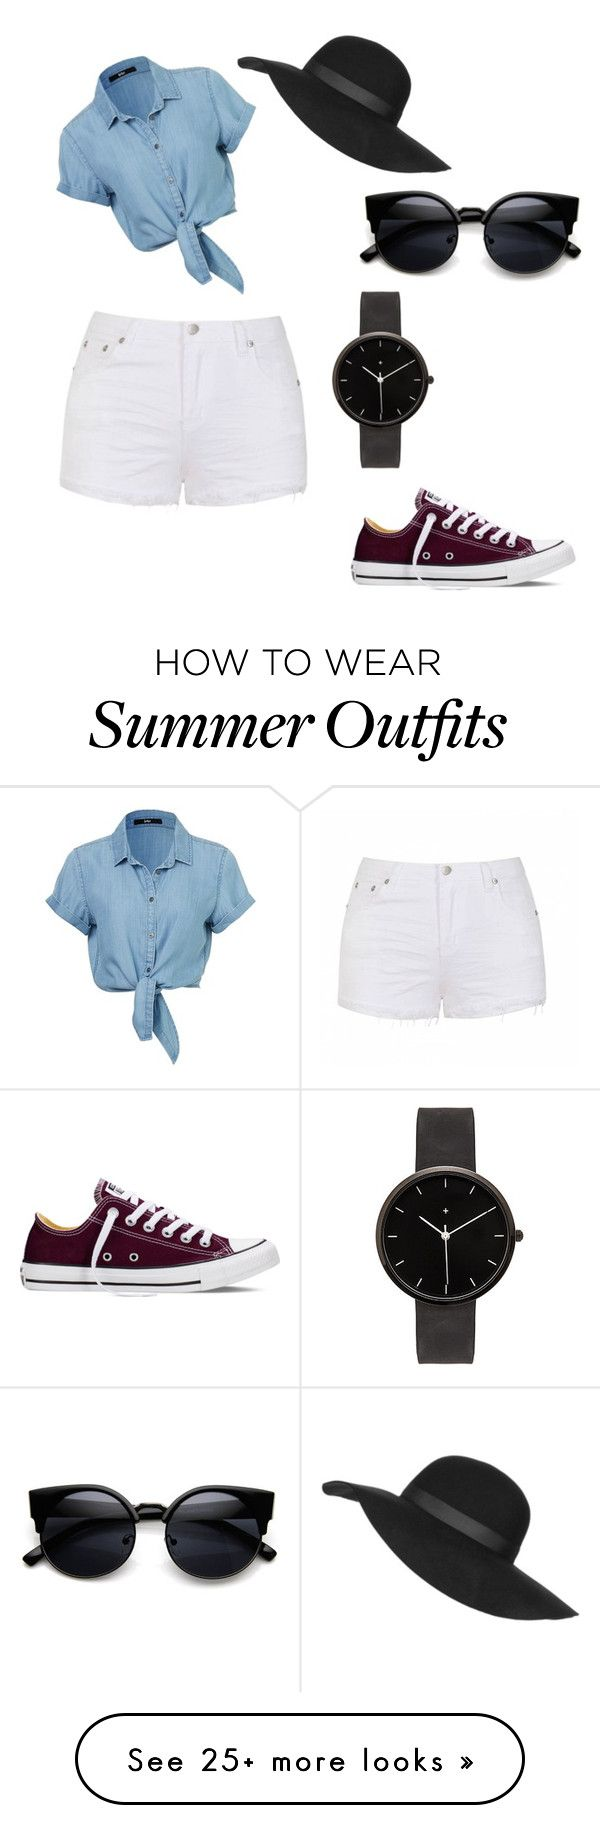 """""""cute summer outfit"""" by cgraves12 on Polyvore featuring Ally Fashion, Topshop, Converse, I Love Ugly, women's clothing, women, female, woman, misses and juniors"""